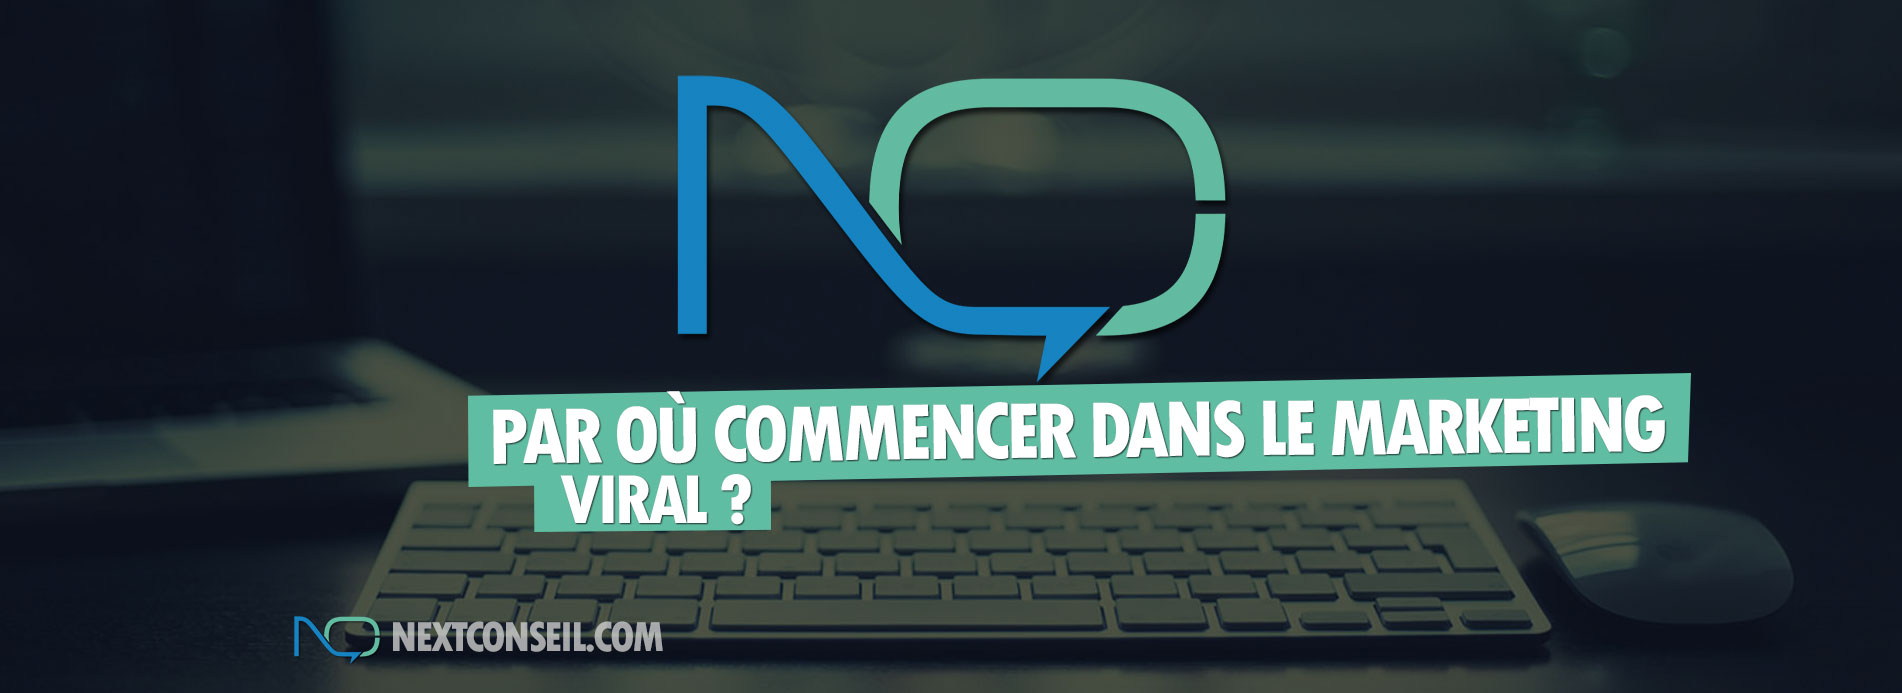 Par où commencer dans le marketing viral ?